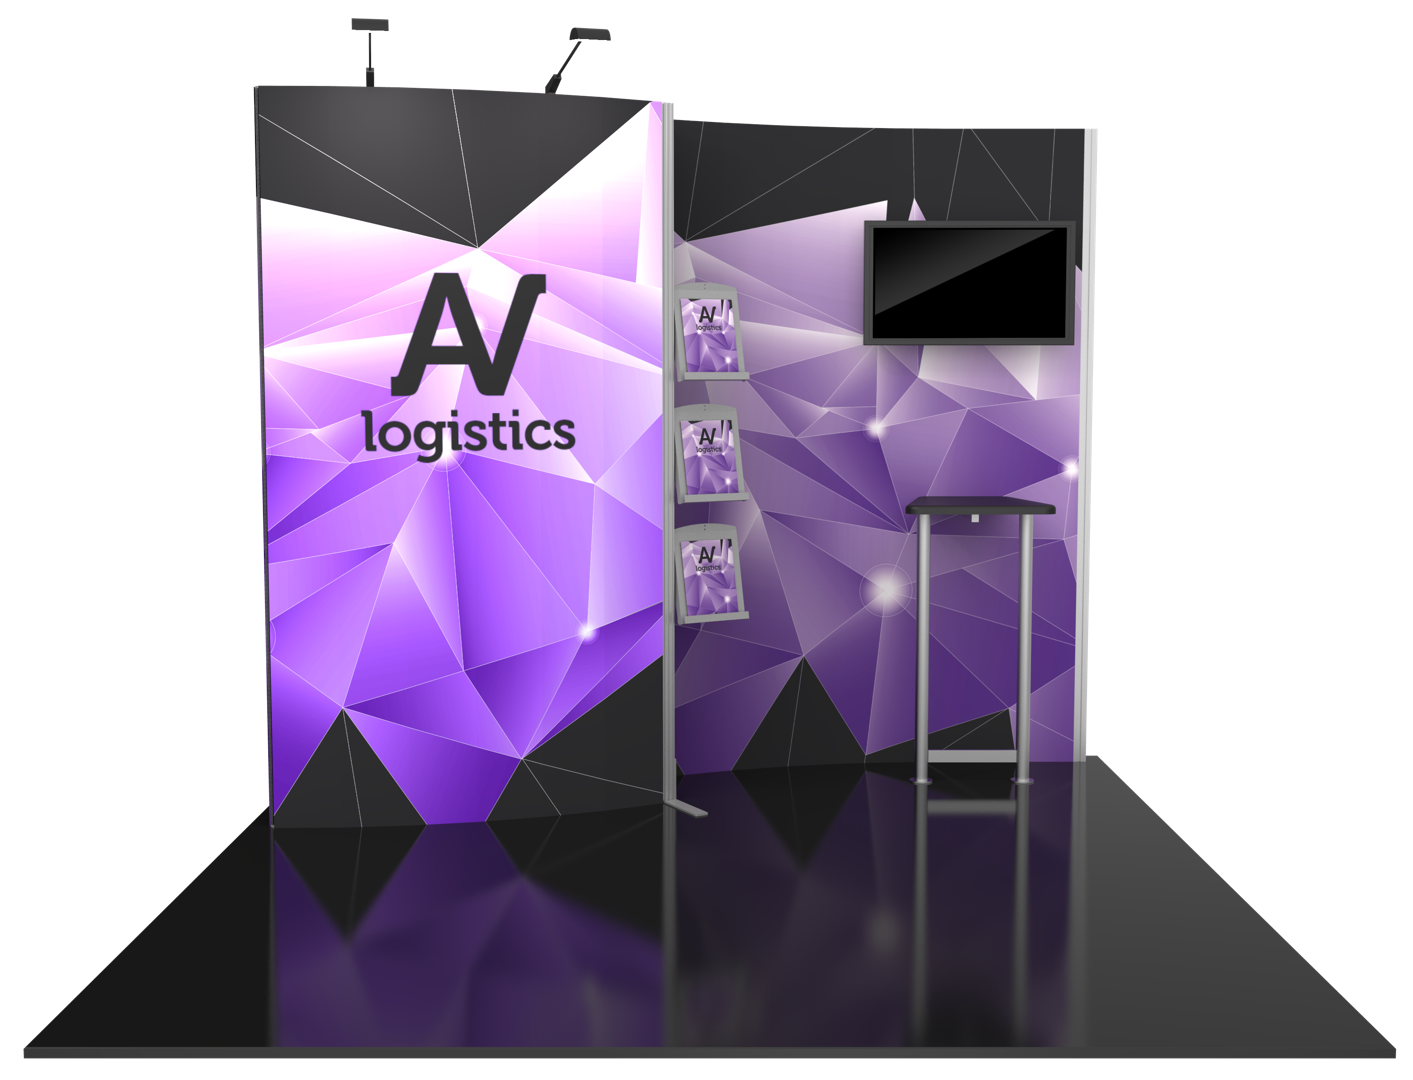 Hybrid Pro Modular Kit 02, hybrid trade show displays, Modular displays, hybrid display, hybrid exhibits, hybrid displays, custom modular exhibits